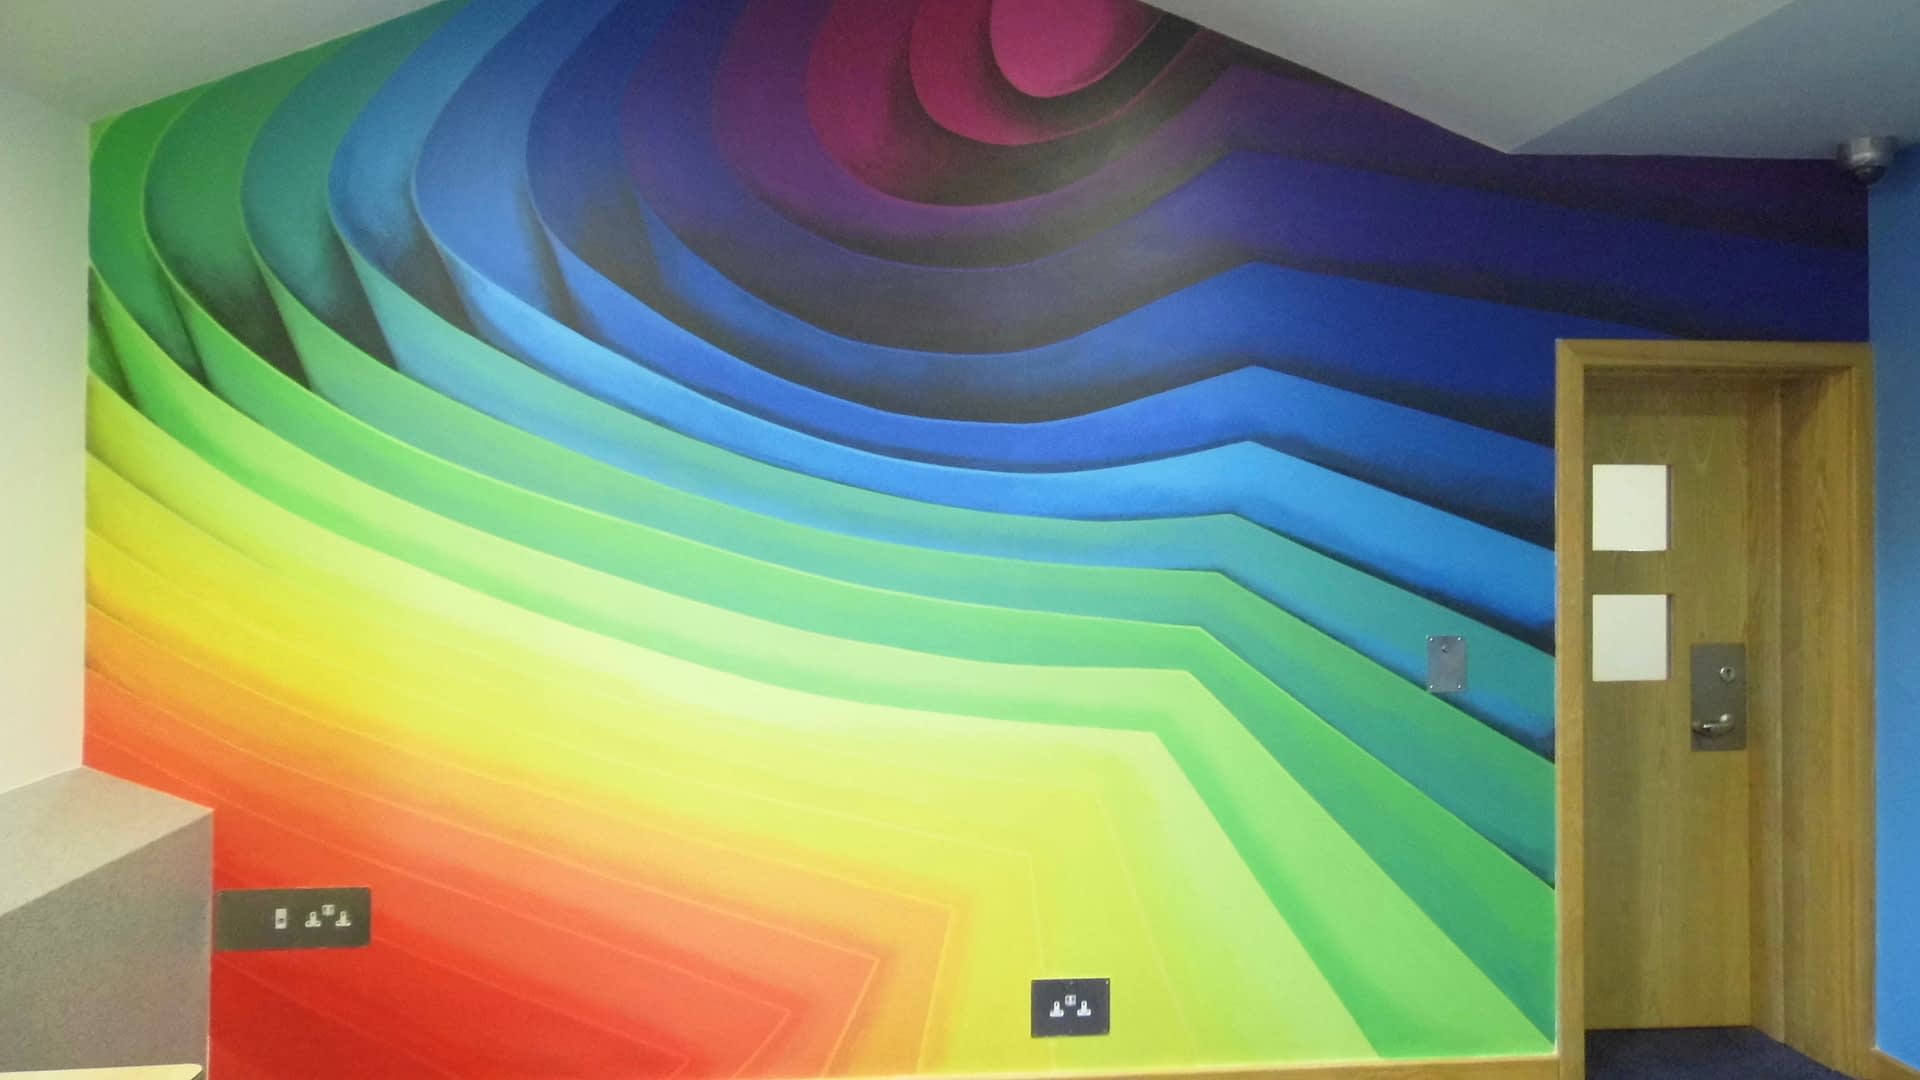 Abstract 3D Spectrum Mural II